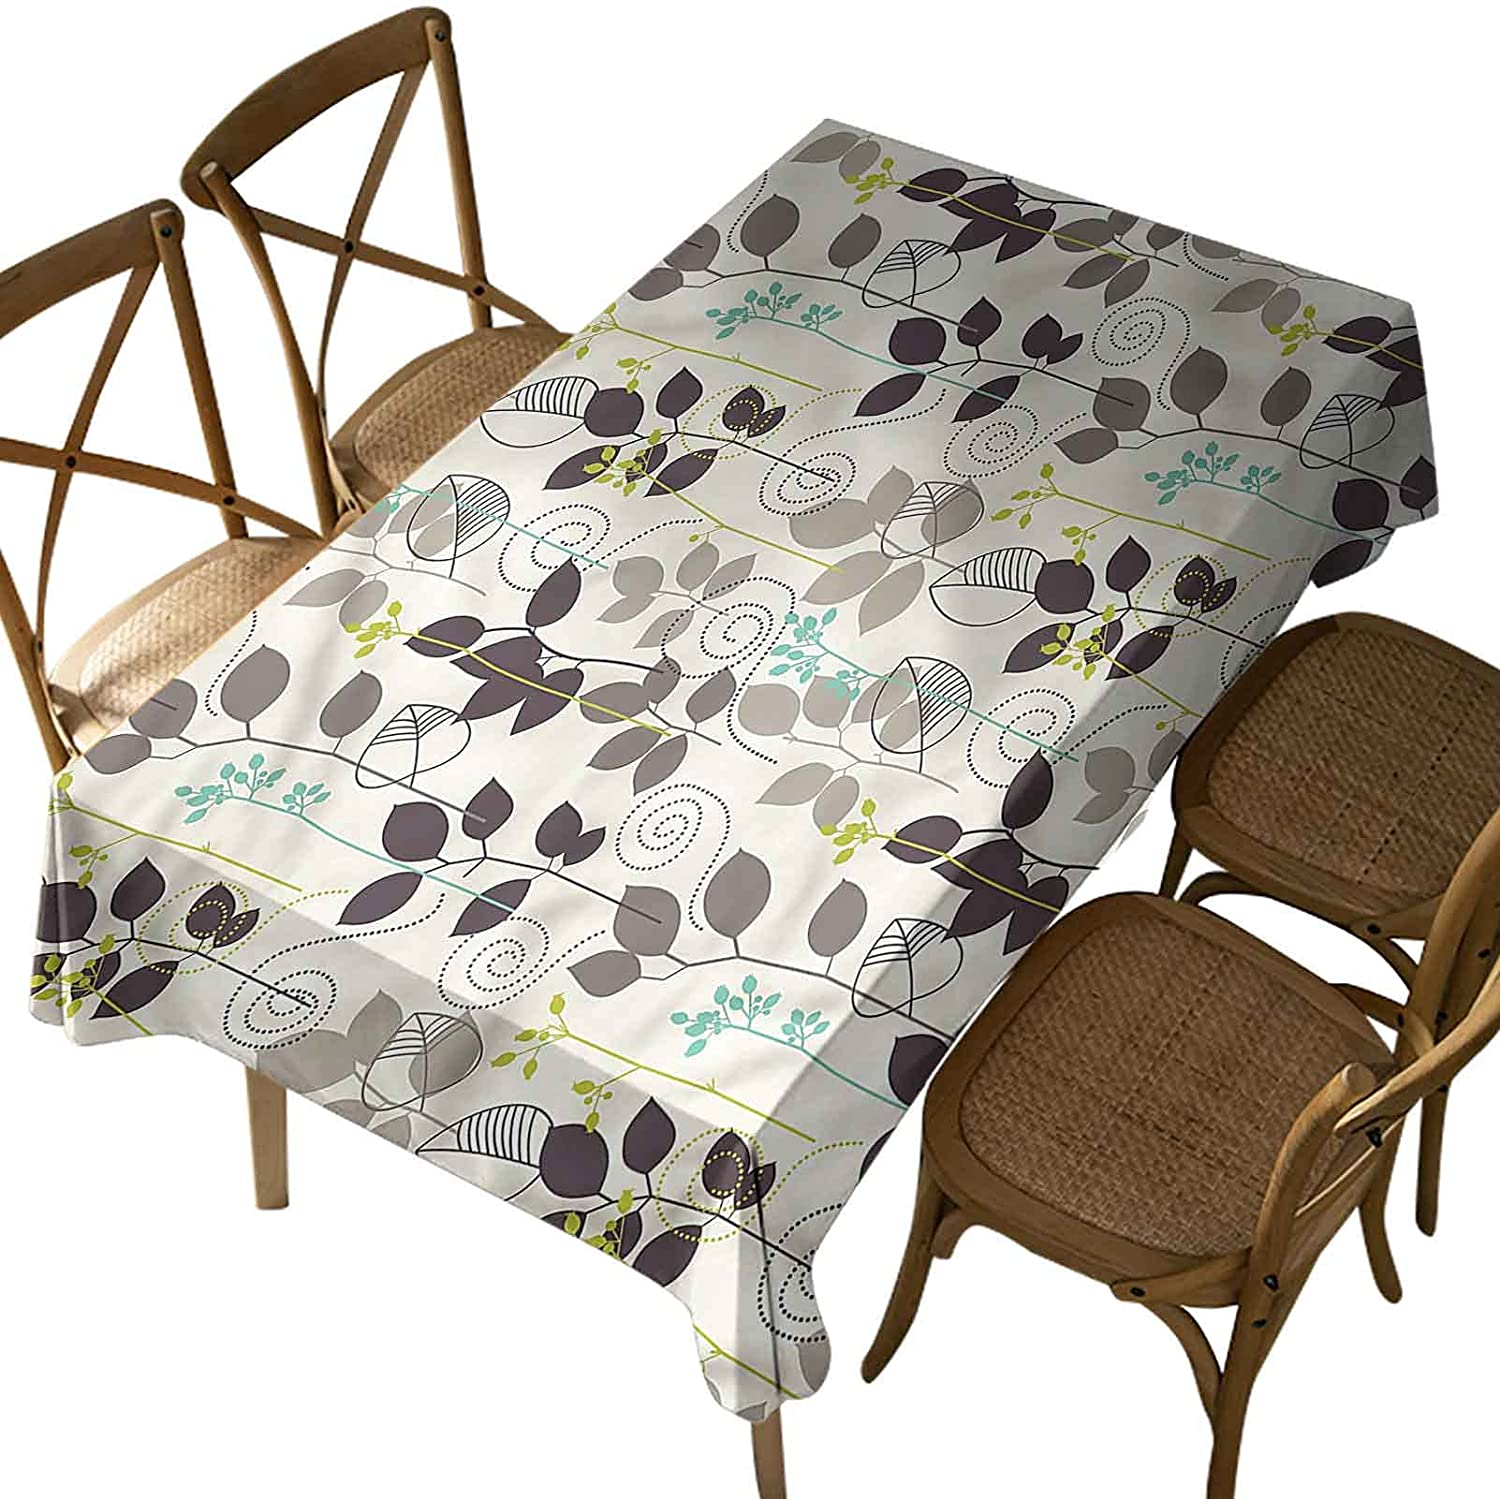 Iuvolux Picnic Table Cloth,Floral,Doodle Leaves Earth Tone,Oil-Proof,Stain Proof, Water Resistant, Polyester,Washable Table Cover,for Spring/Summer/Party/Picnic Oblong 60 x 104 Inch